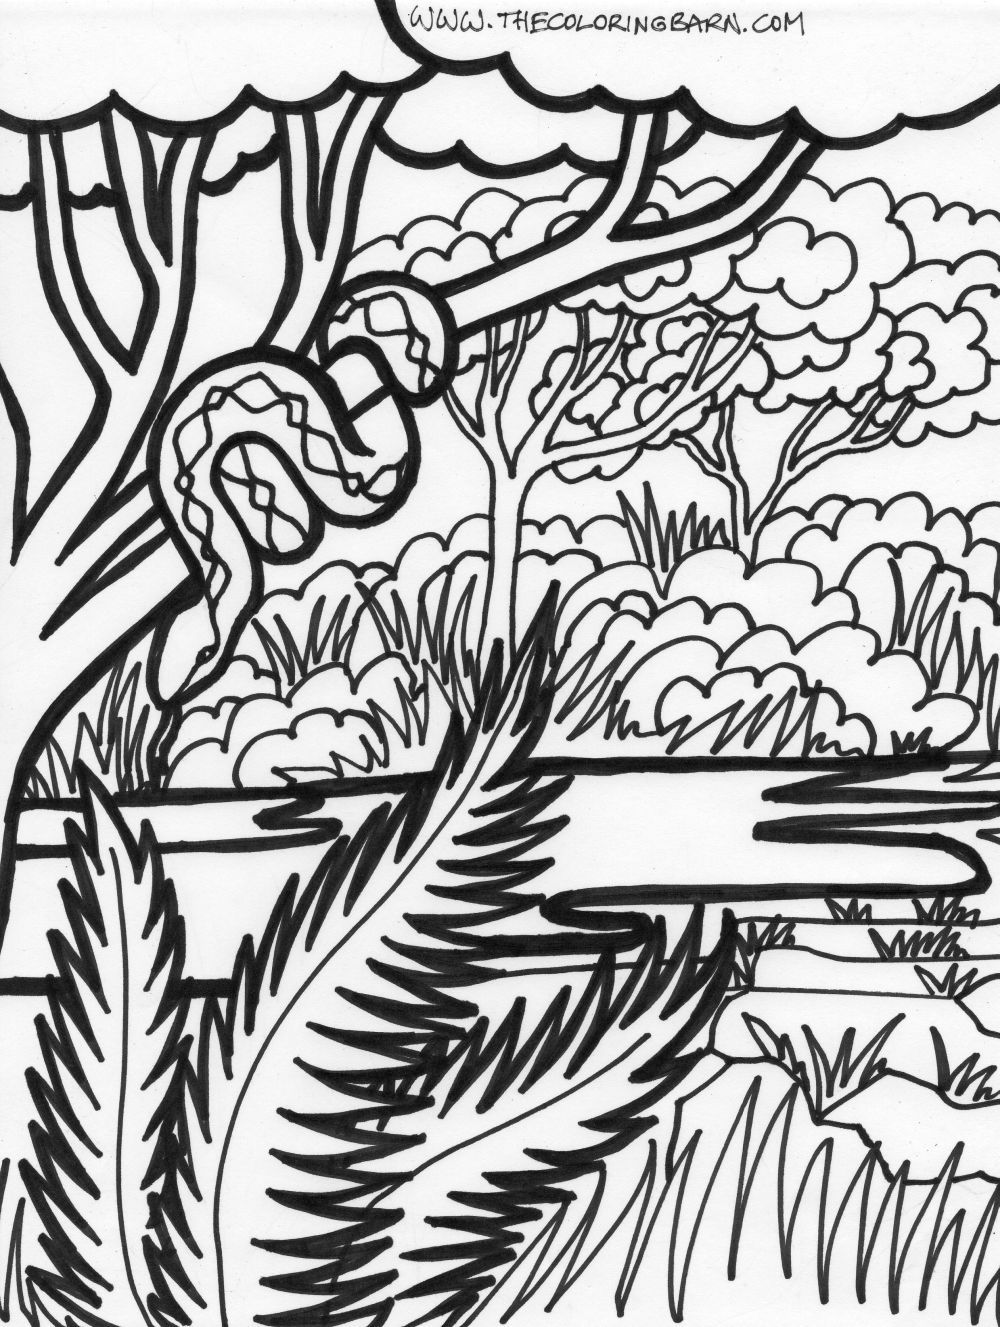 Coloring Pages Rainforest Plants Coloring Pages rainforest plants coloring pages page monkey jungle sheets scene snake page